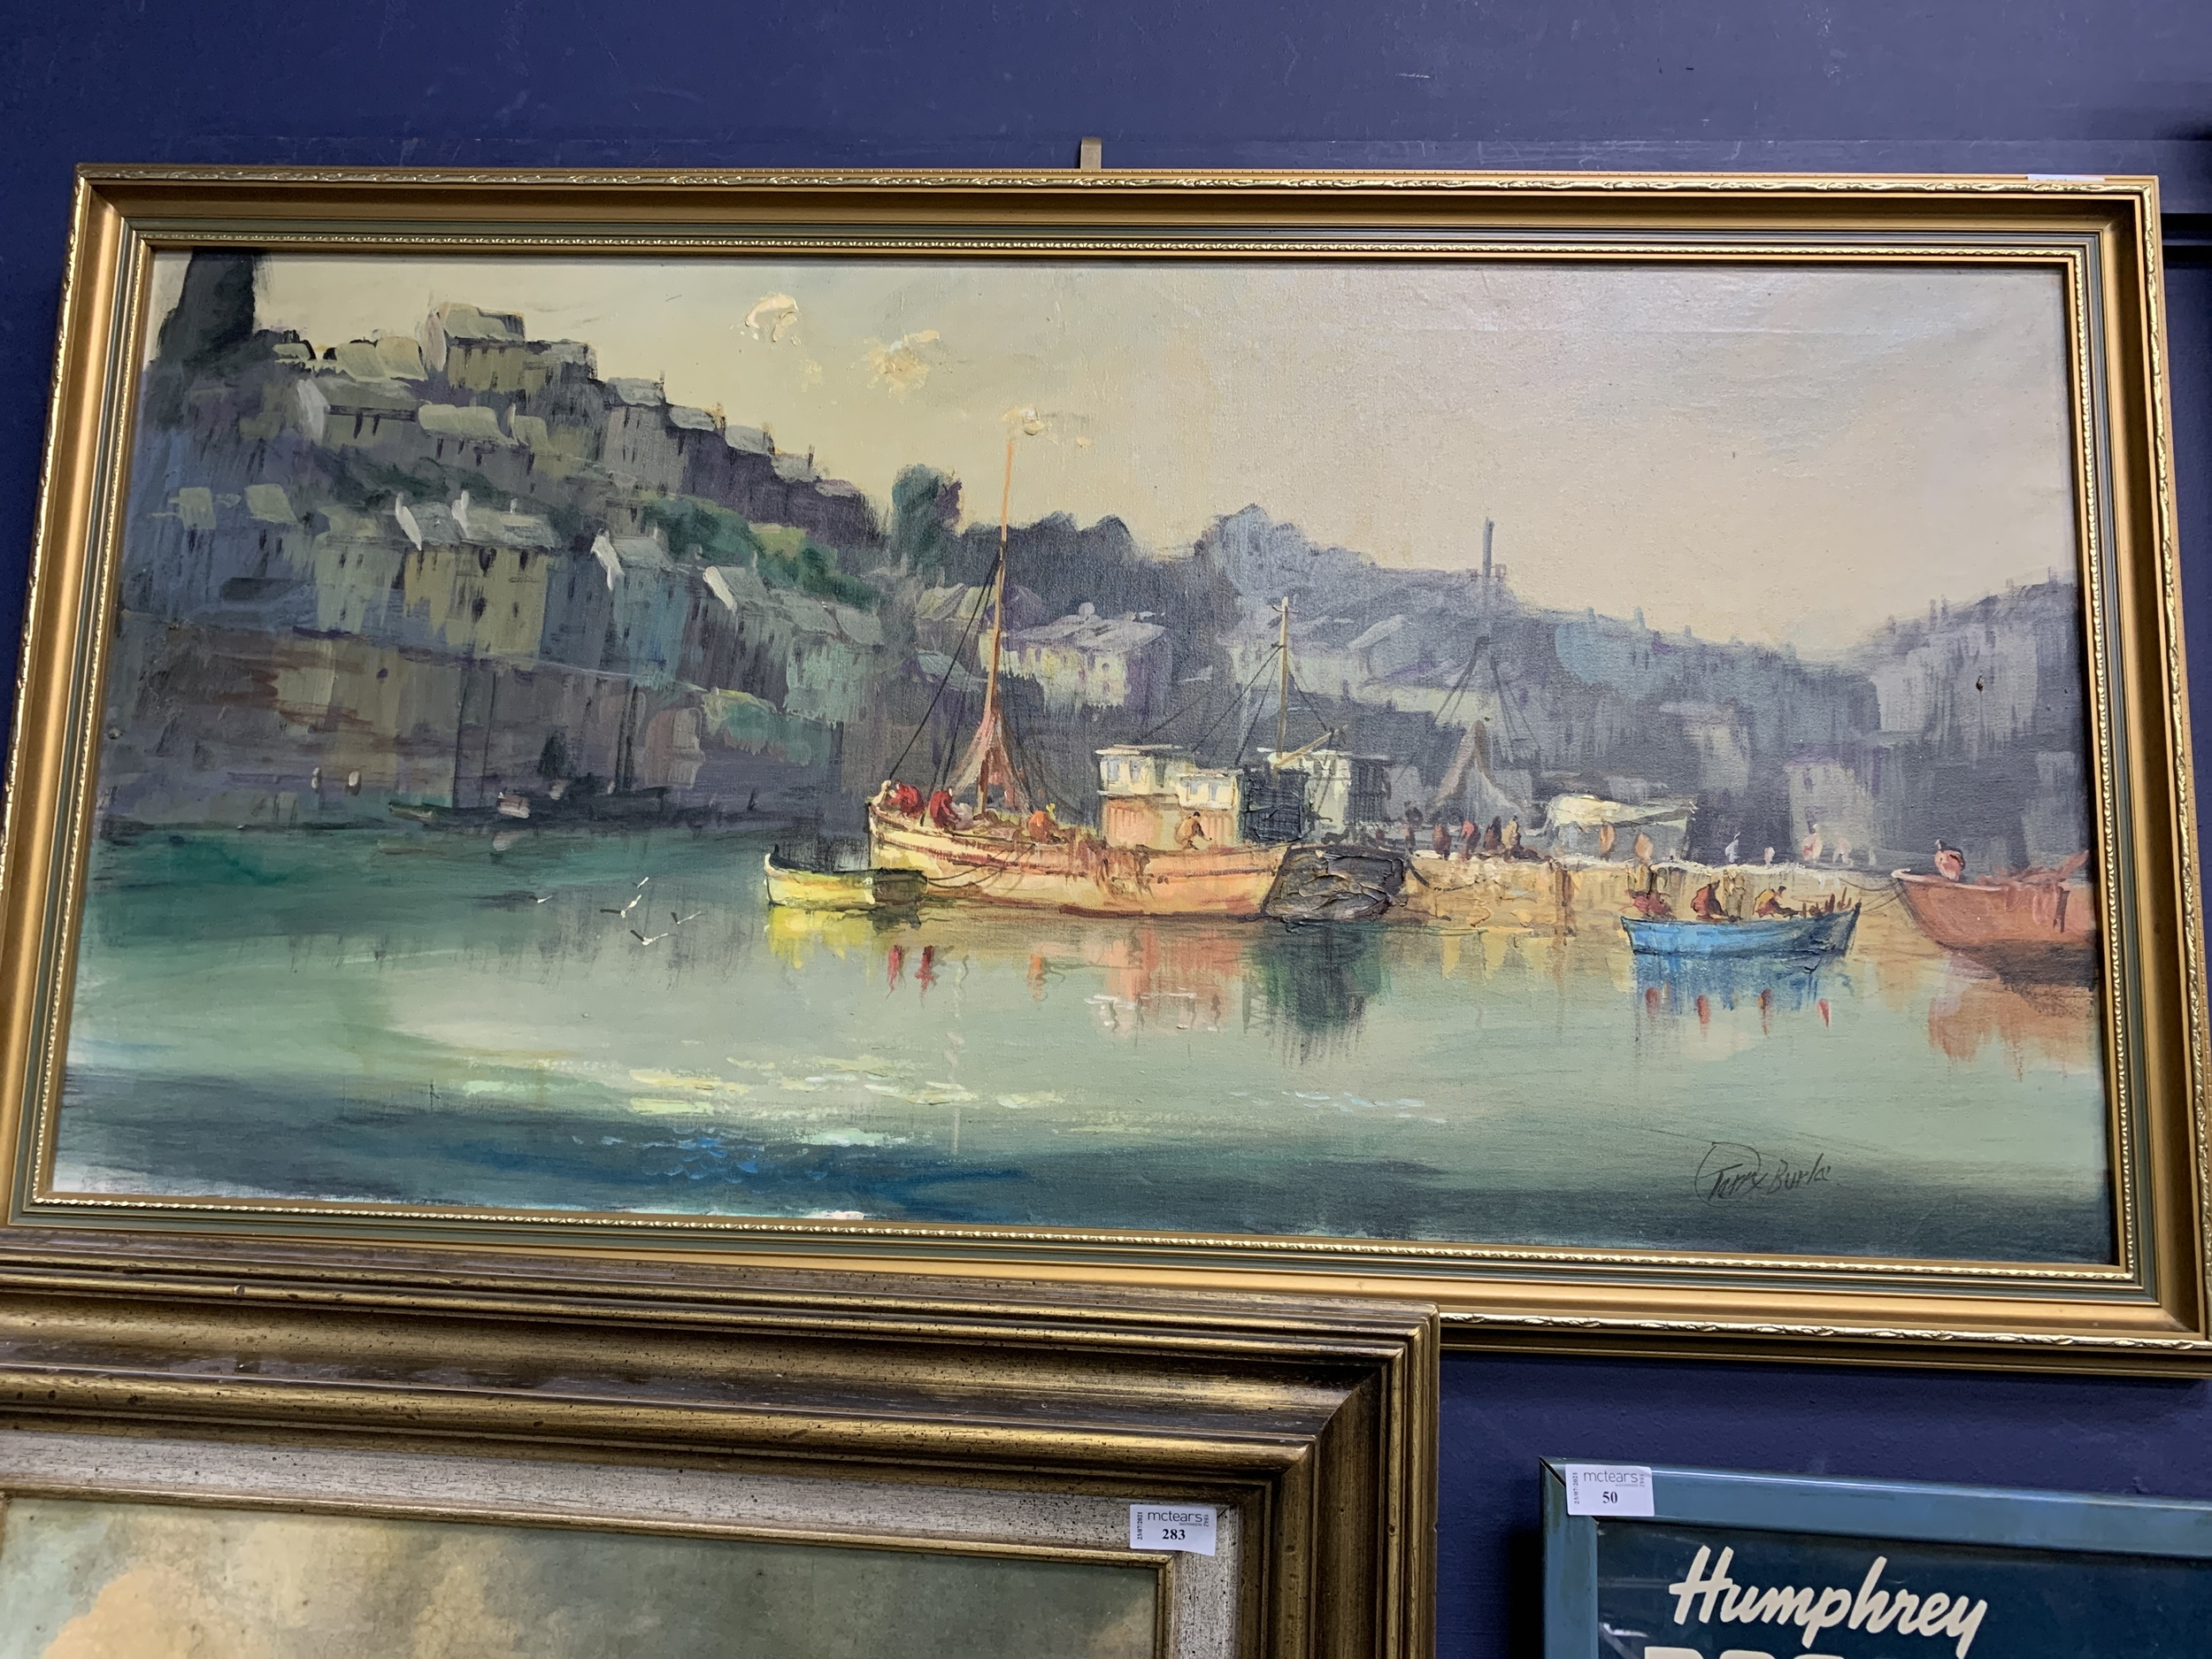 GARRY BURLA, BOATING SCENE, FRAMED ACRYLIC PAINTING, ALONG WITH OTHER PICTURES - Image 3 of 4